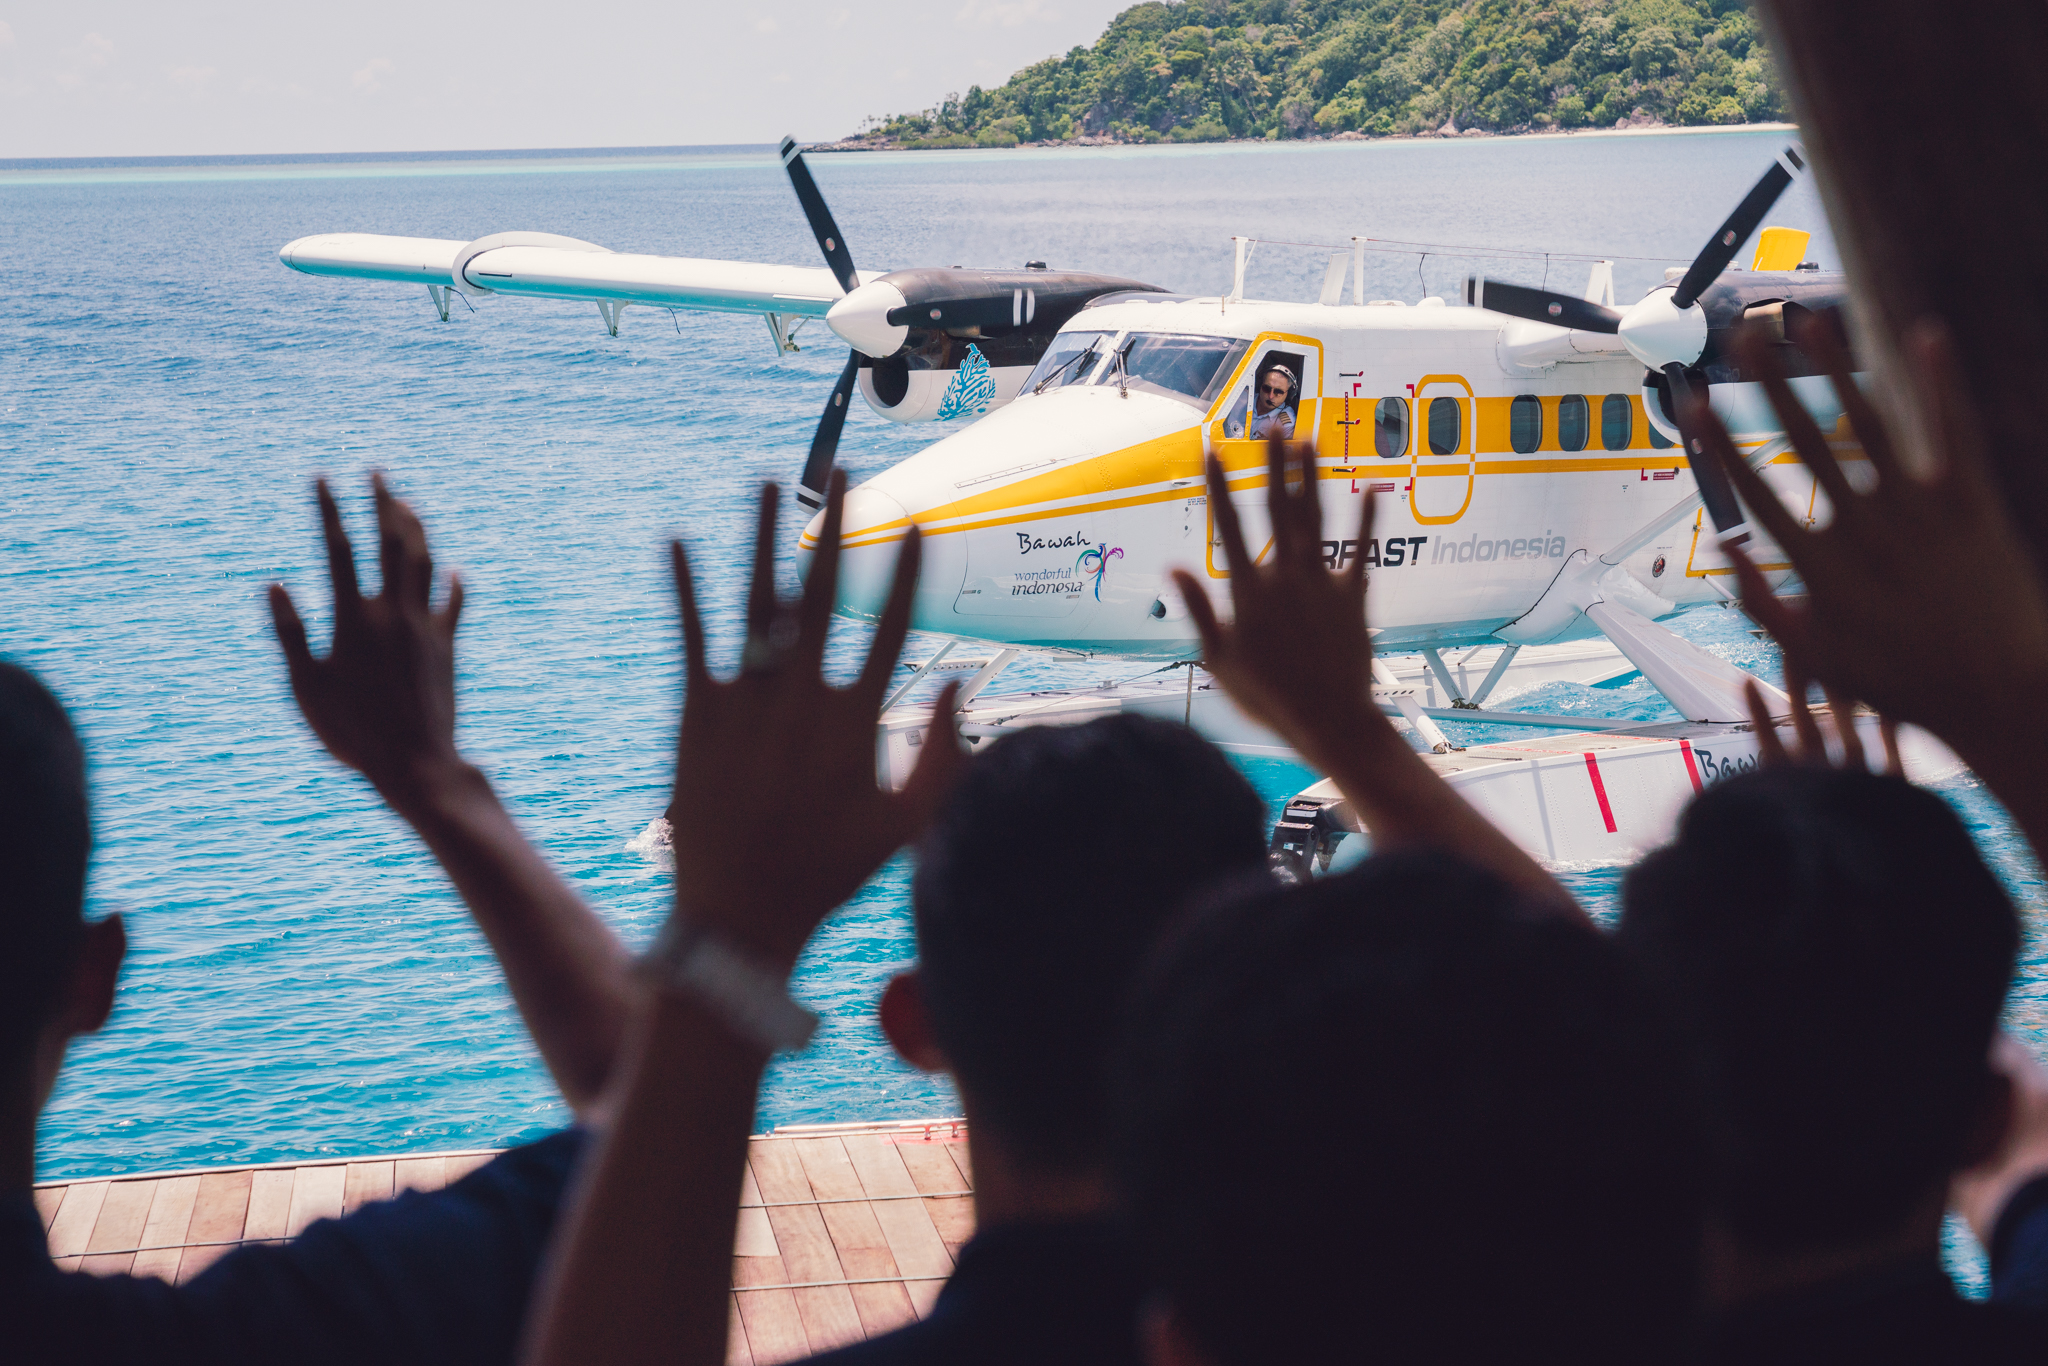 Waving off goodbye to seaplane staff